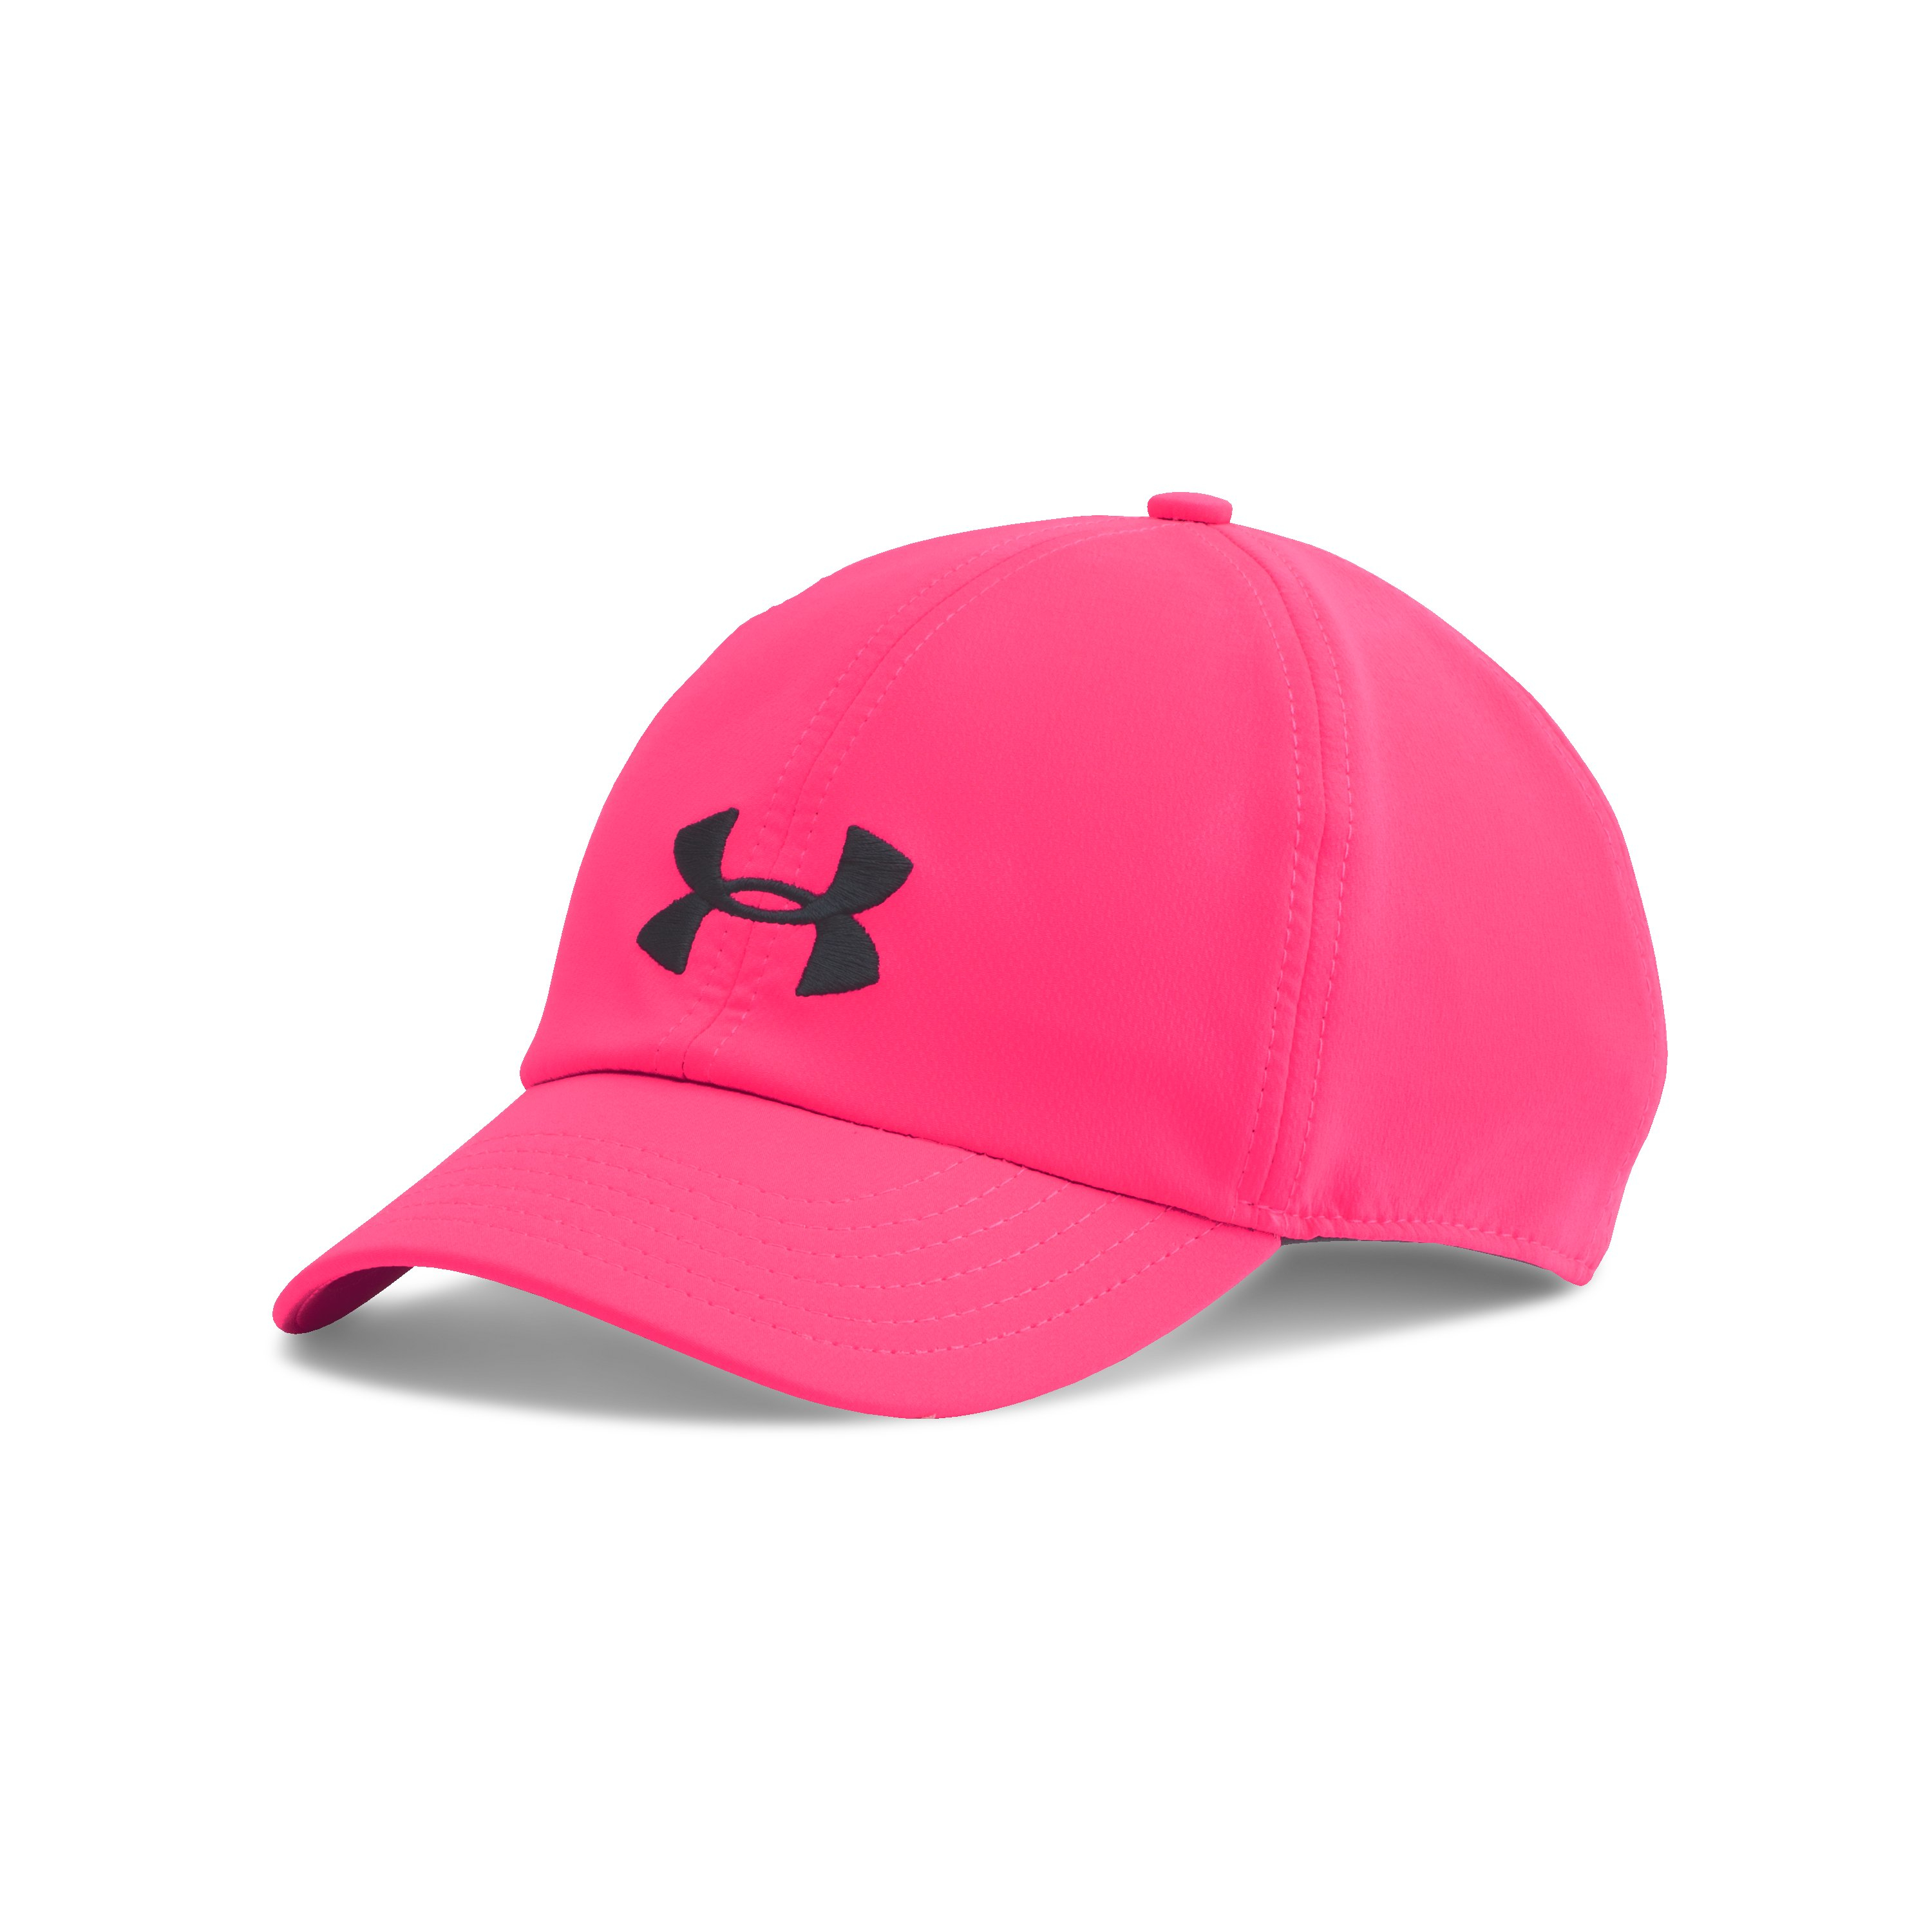 c464ddbe9a3 Lyst - Under Armour Women s Ua Renegade Cap in Pink